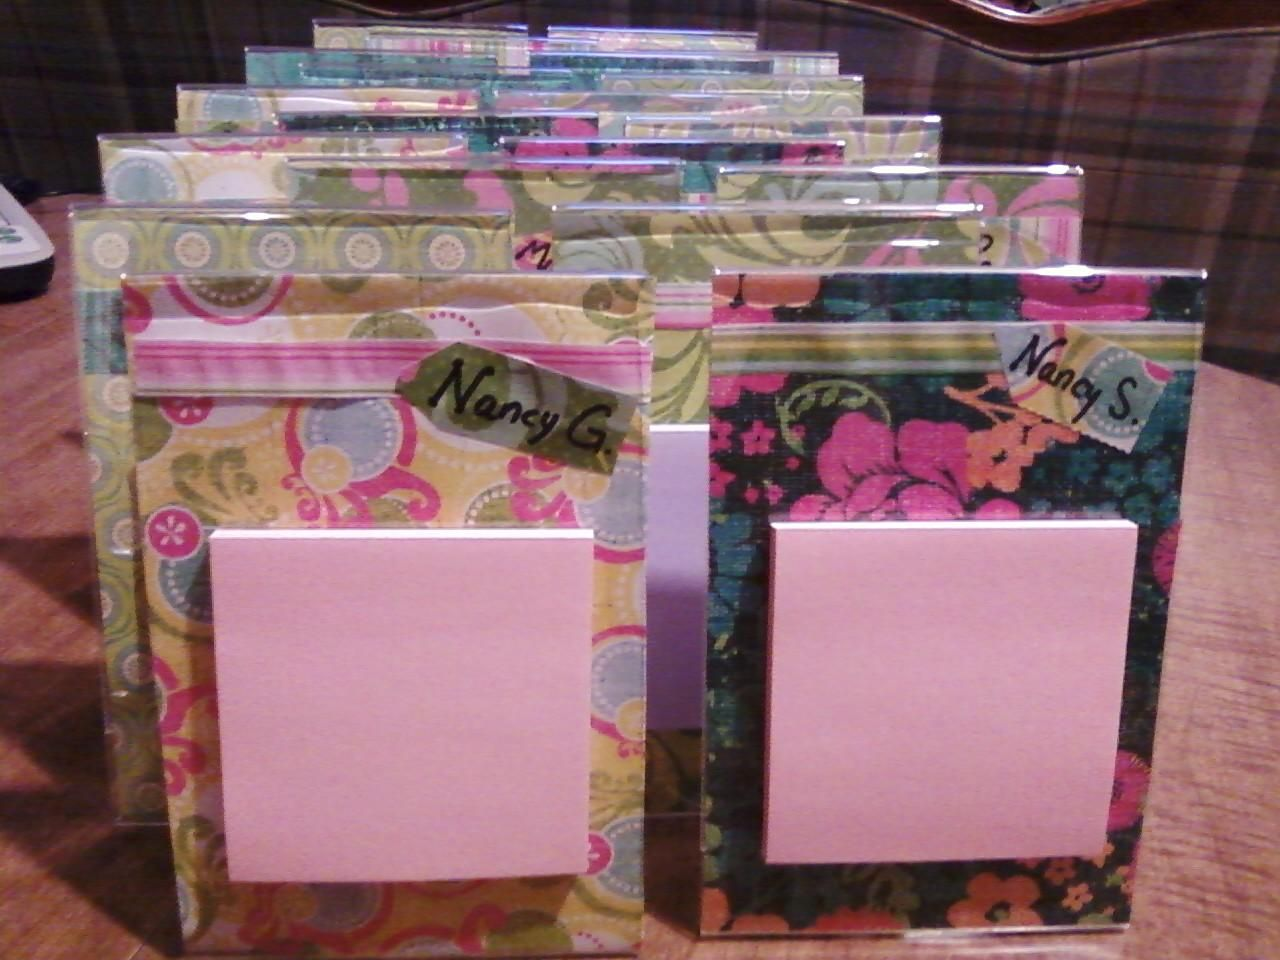 4x6 acrylic photo frames, scrapbook paper inside with co-workers ...